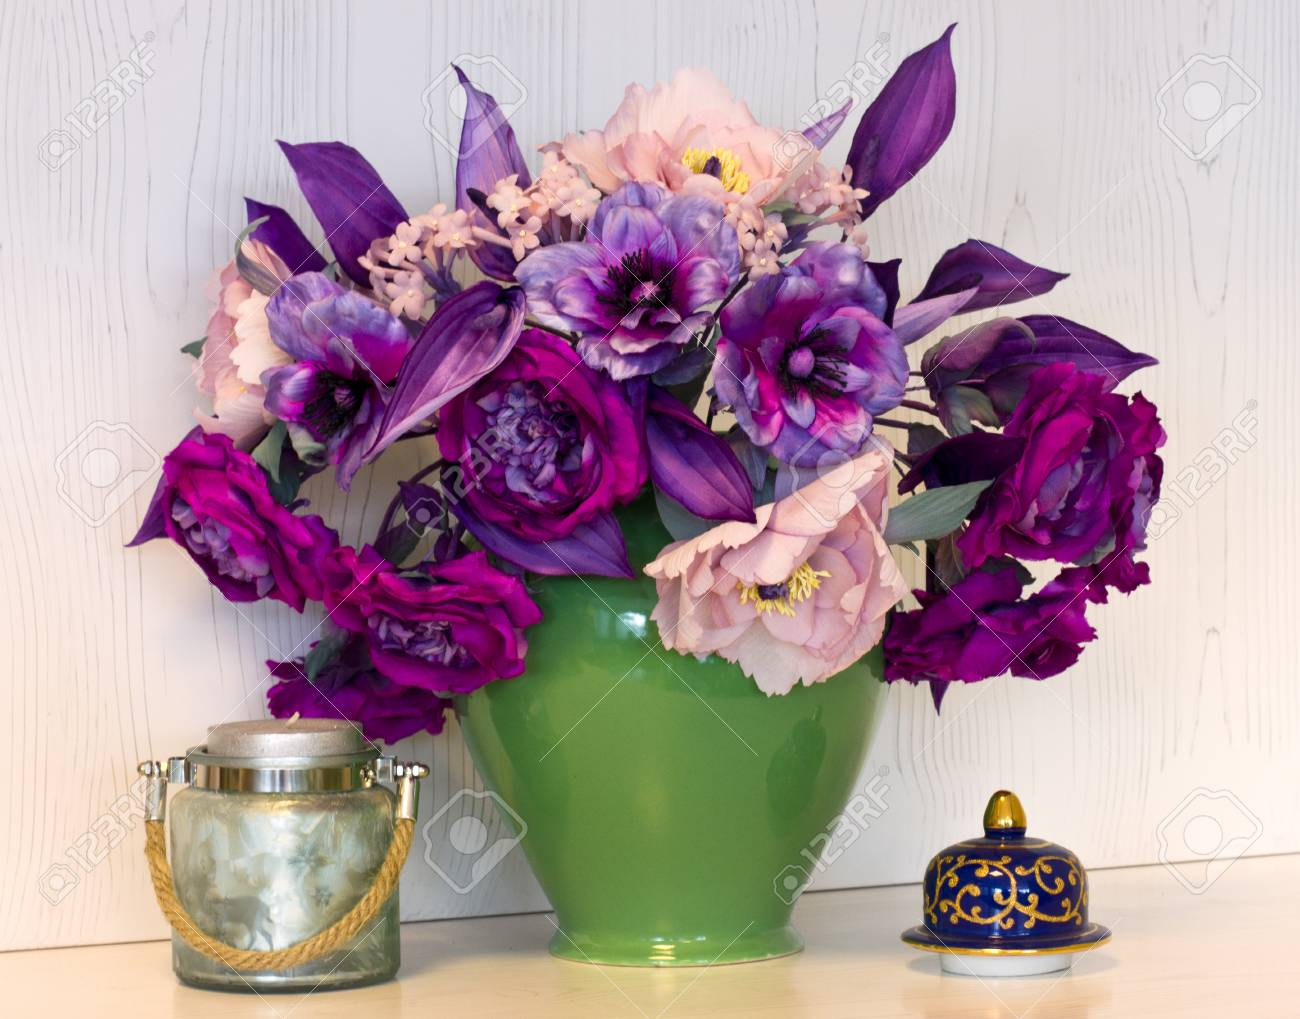 Bouquet Of Pink And Purple Peonies Artificial Flowers Made Of Stock Photo Picture And Royalty Free Image Image 96733023